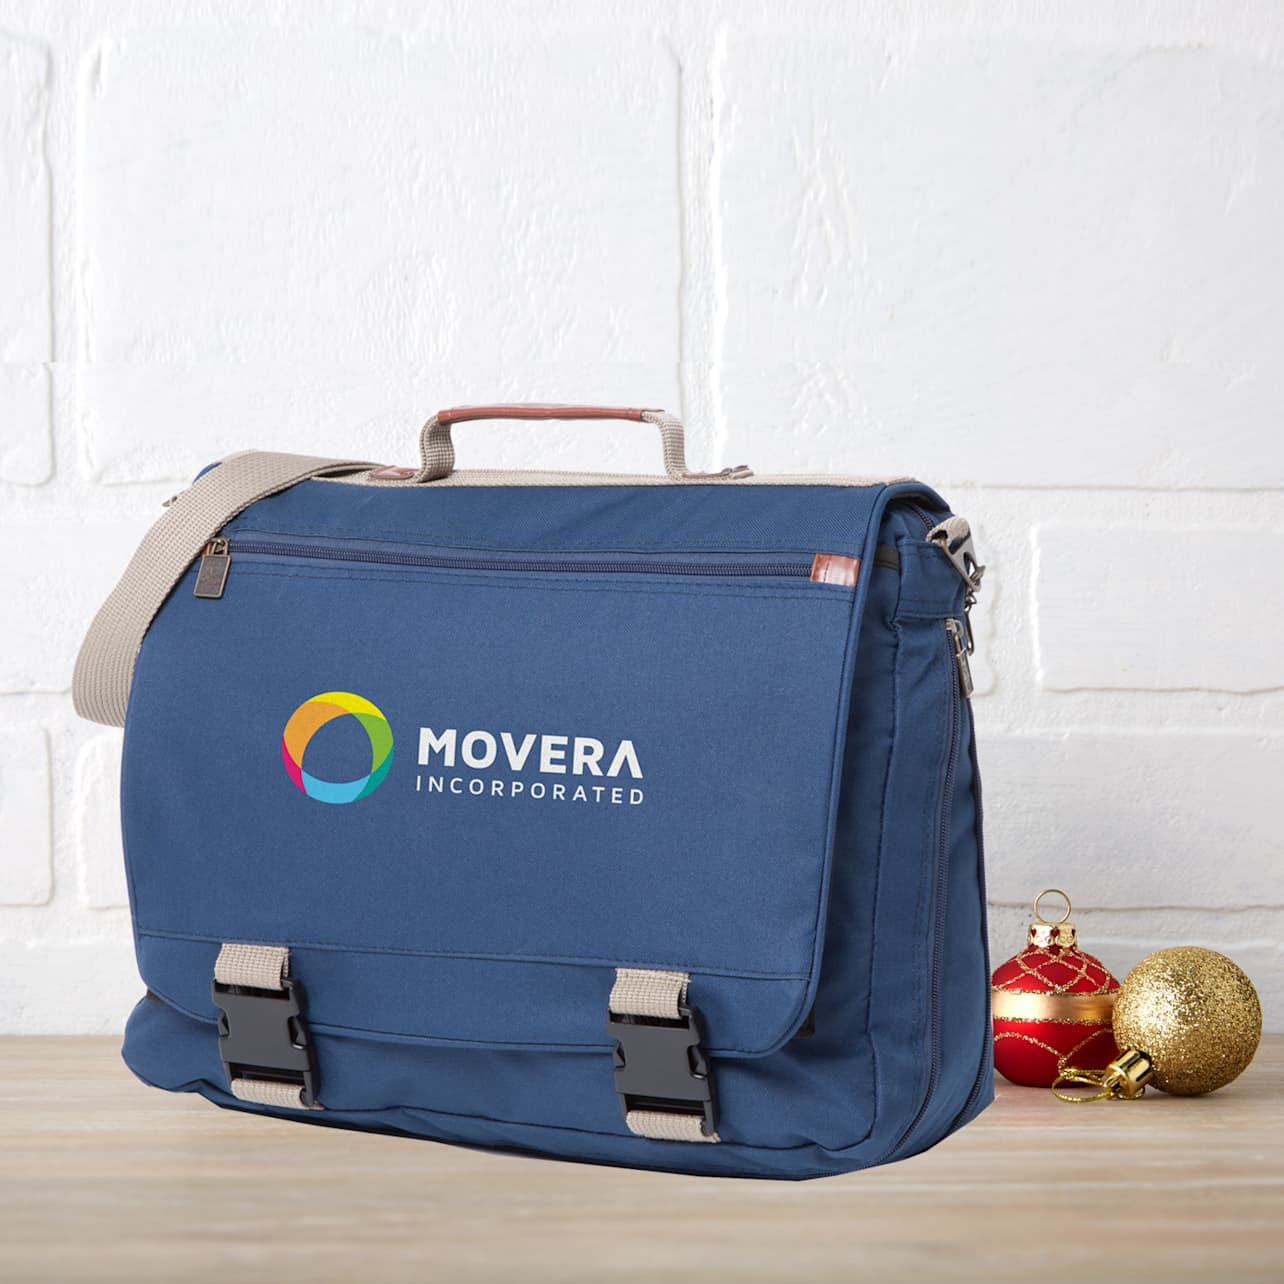 Custom backpack as a holiday gift